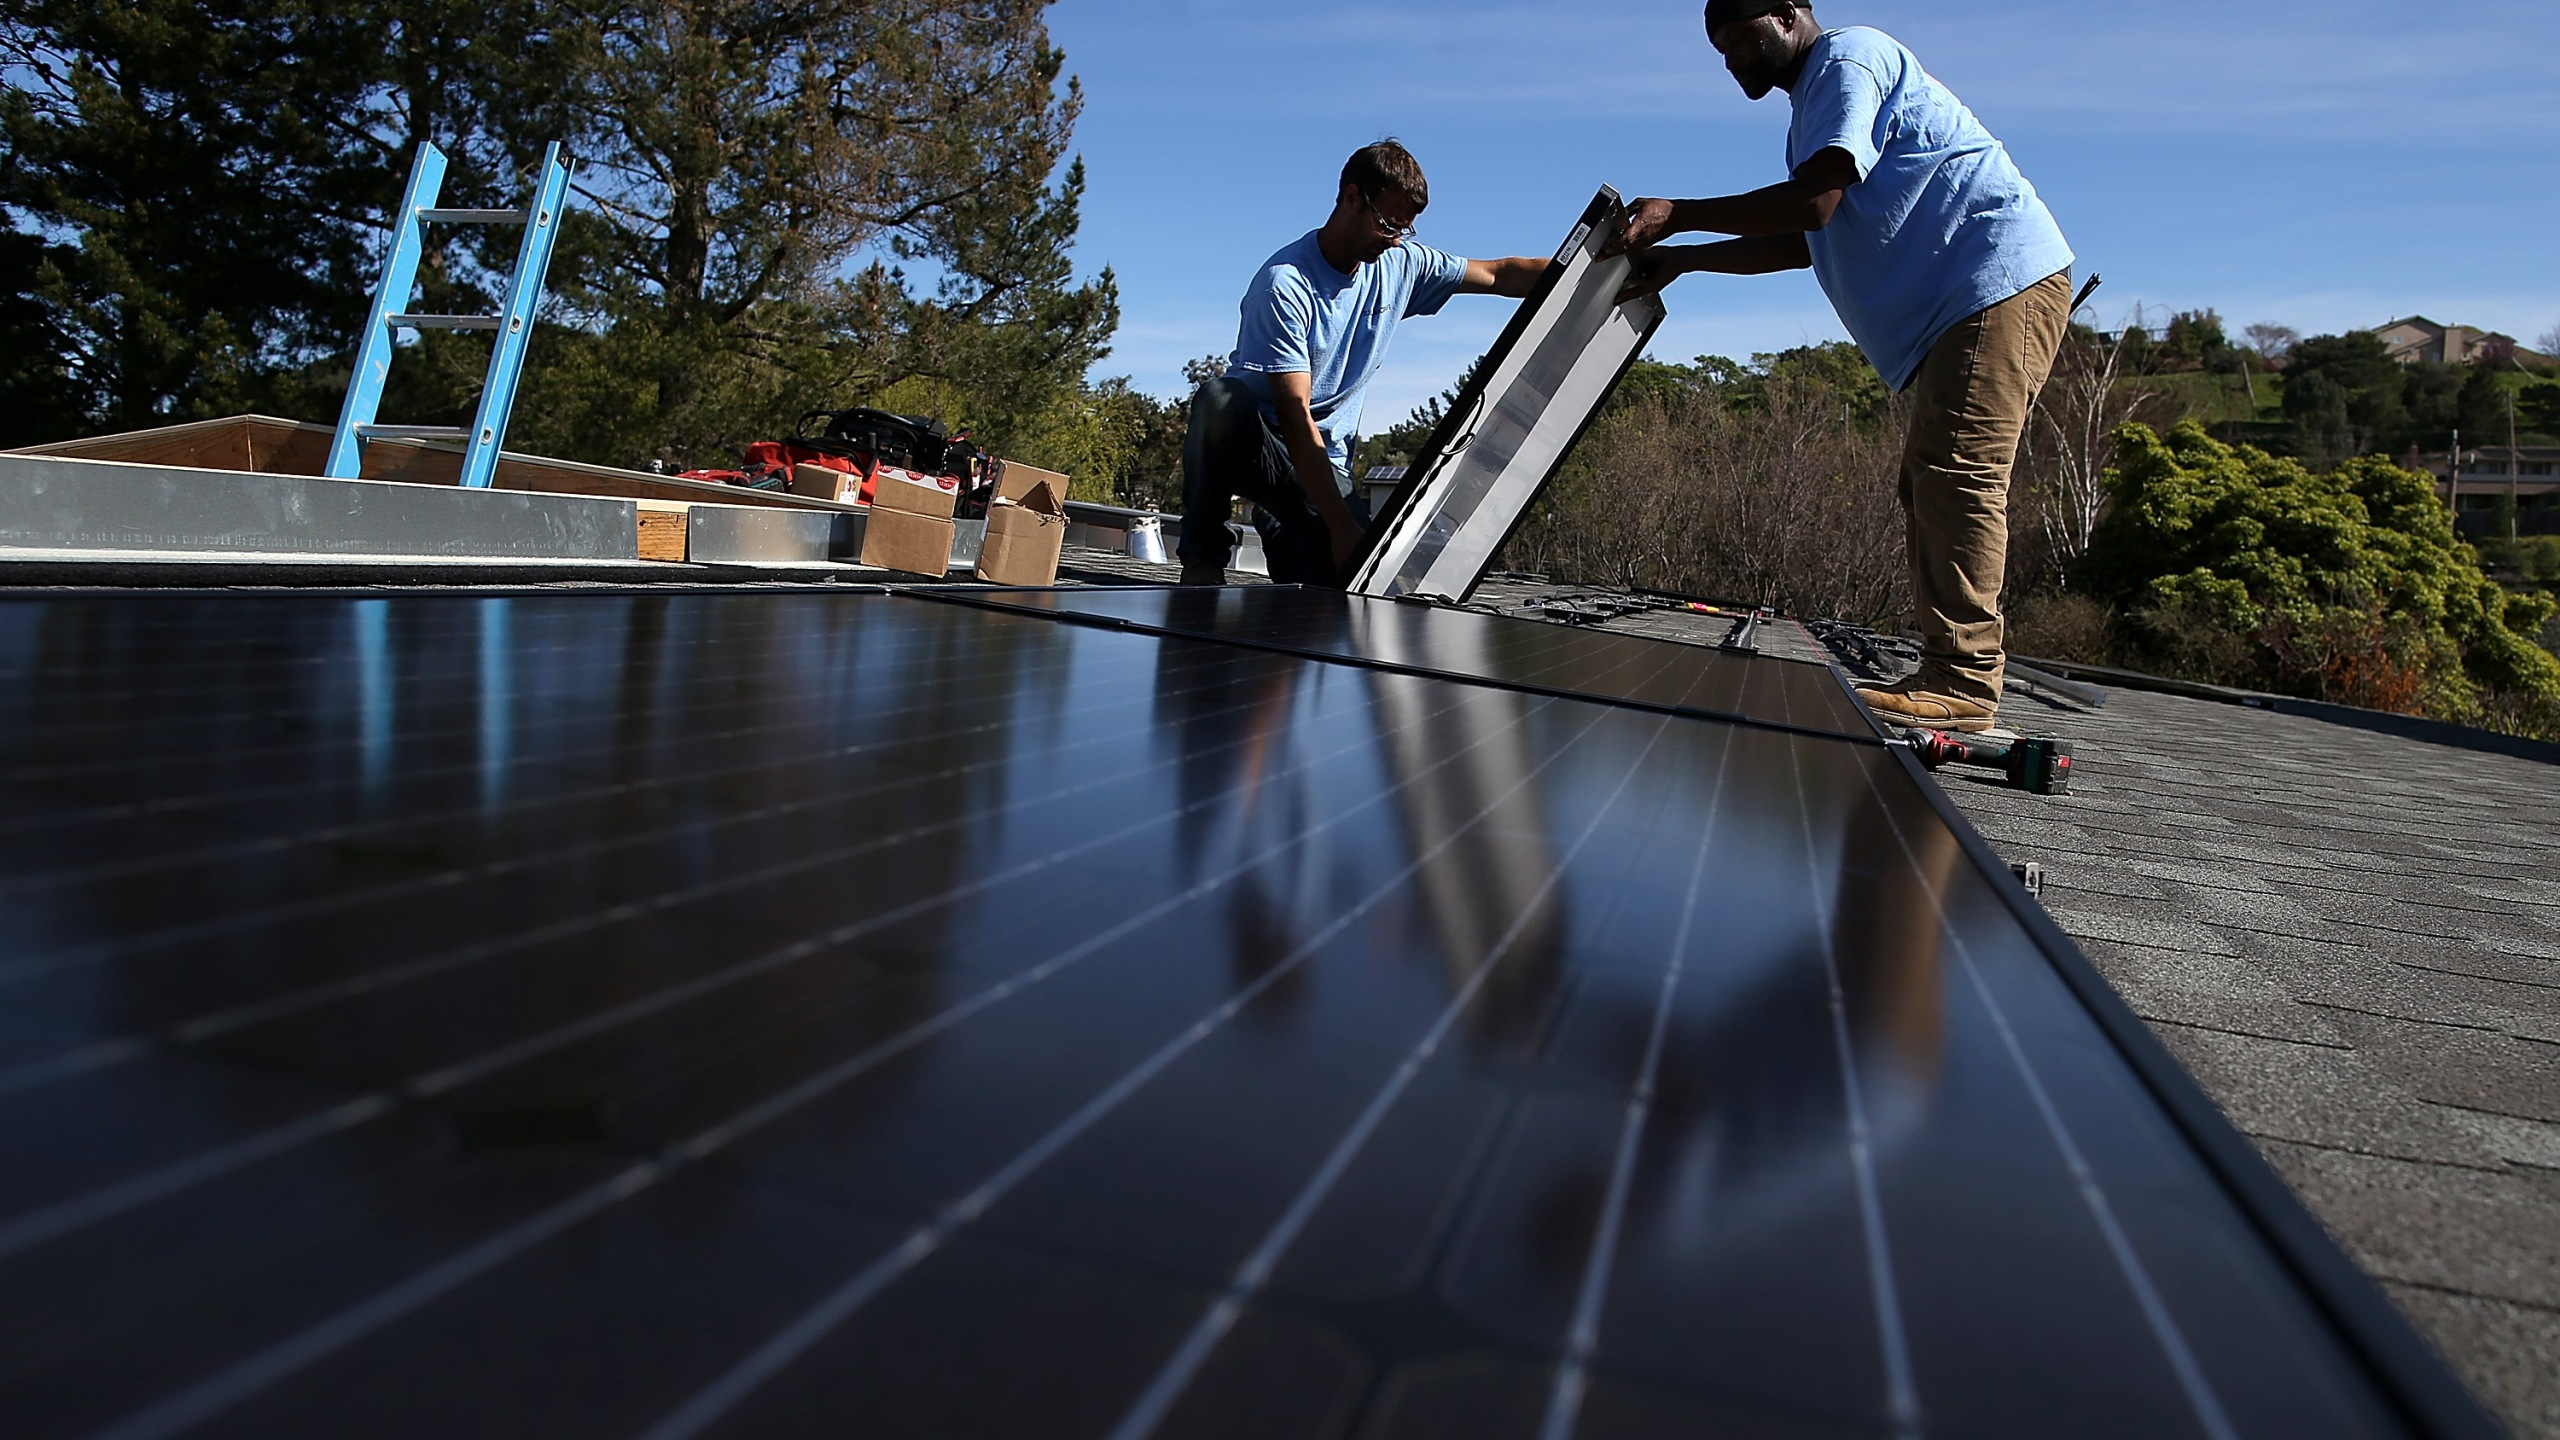 Craig Powell and Edwin Neal install solar panels on the roof of a home on Feb. 26, 2015 in San Rafael, California. (Credit: Justin Sullivan/Getty Images)